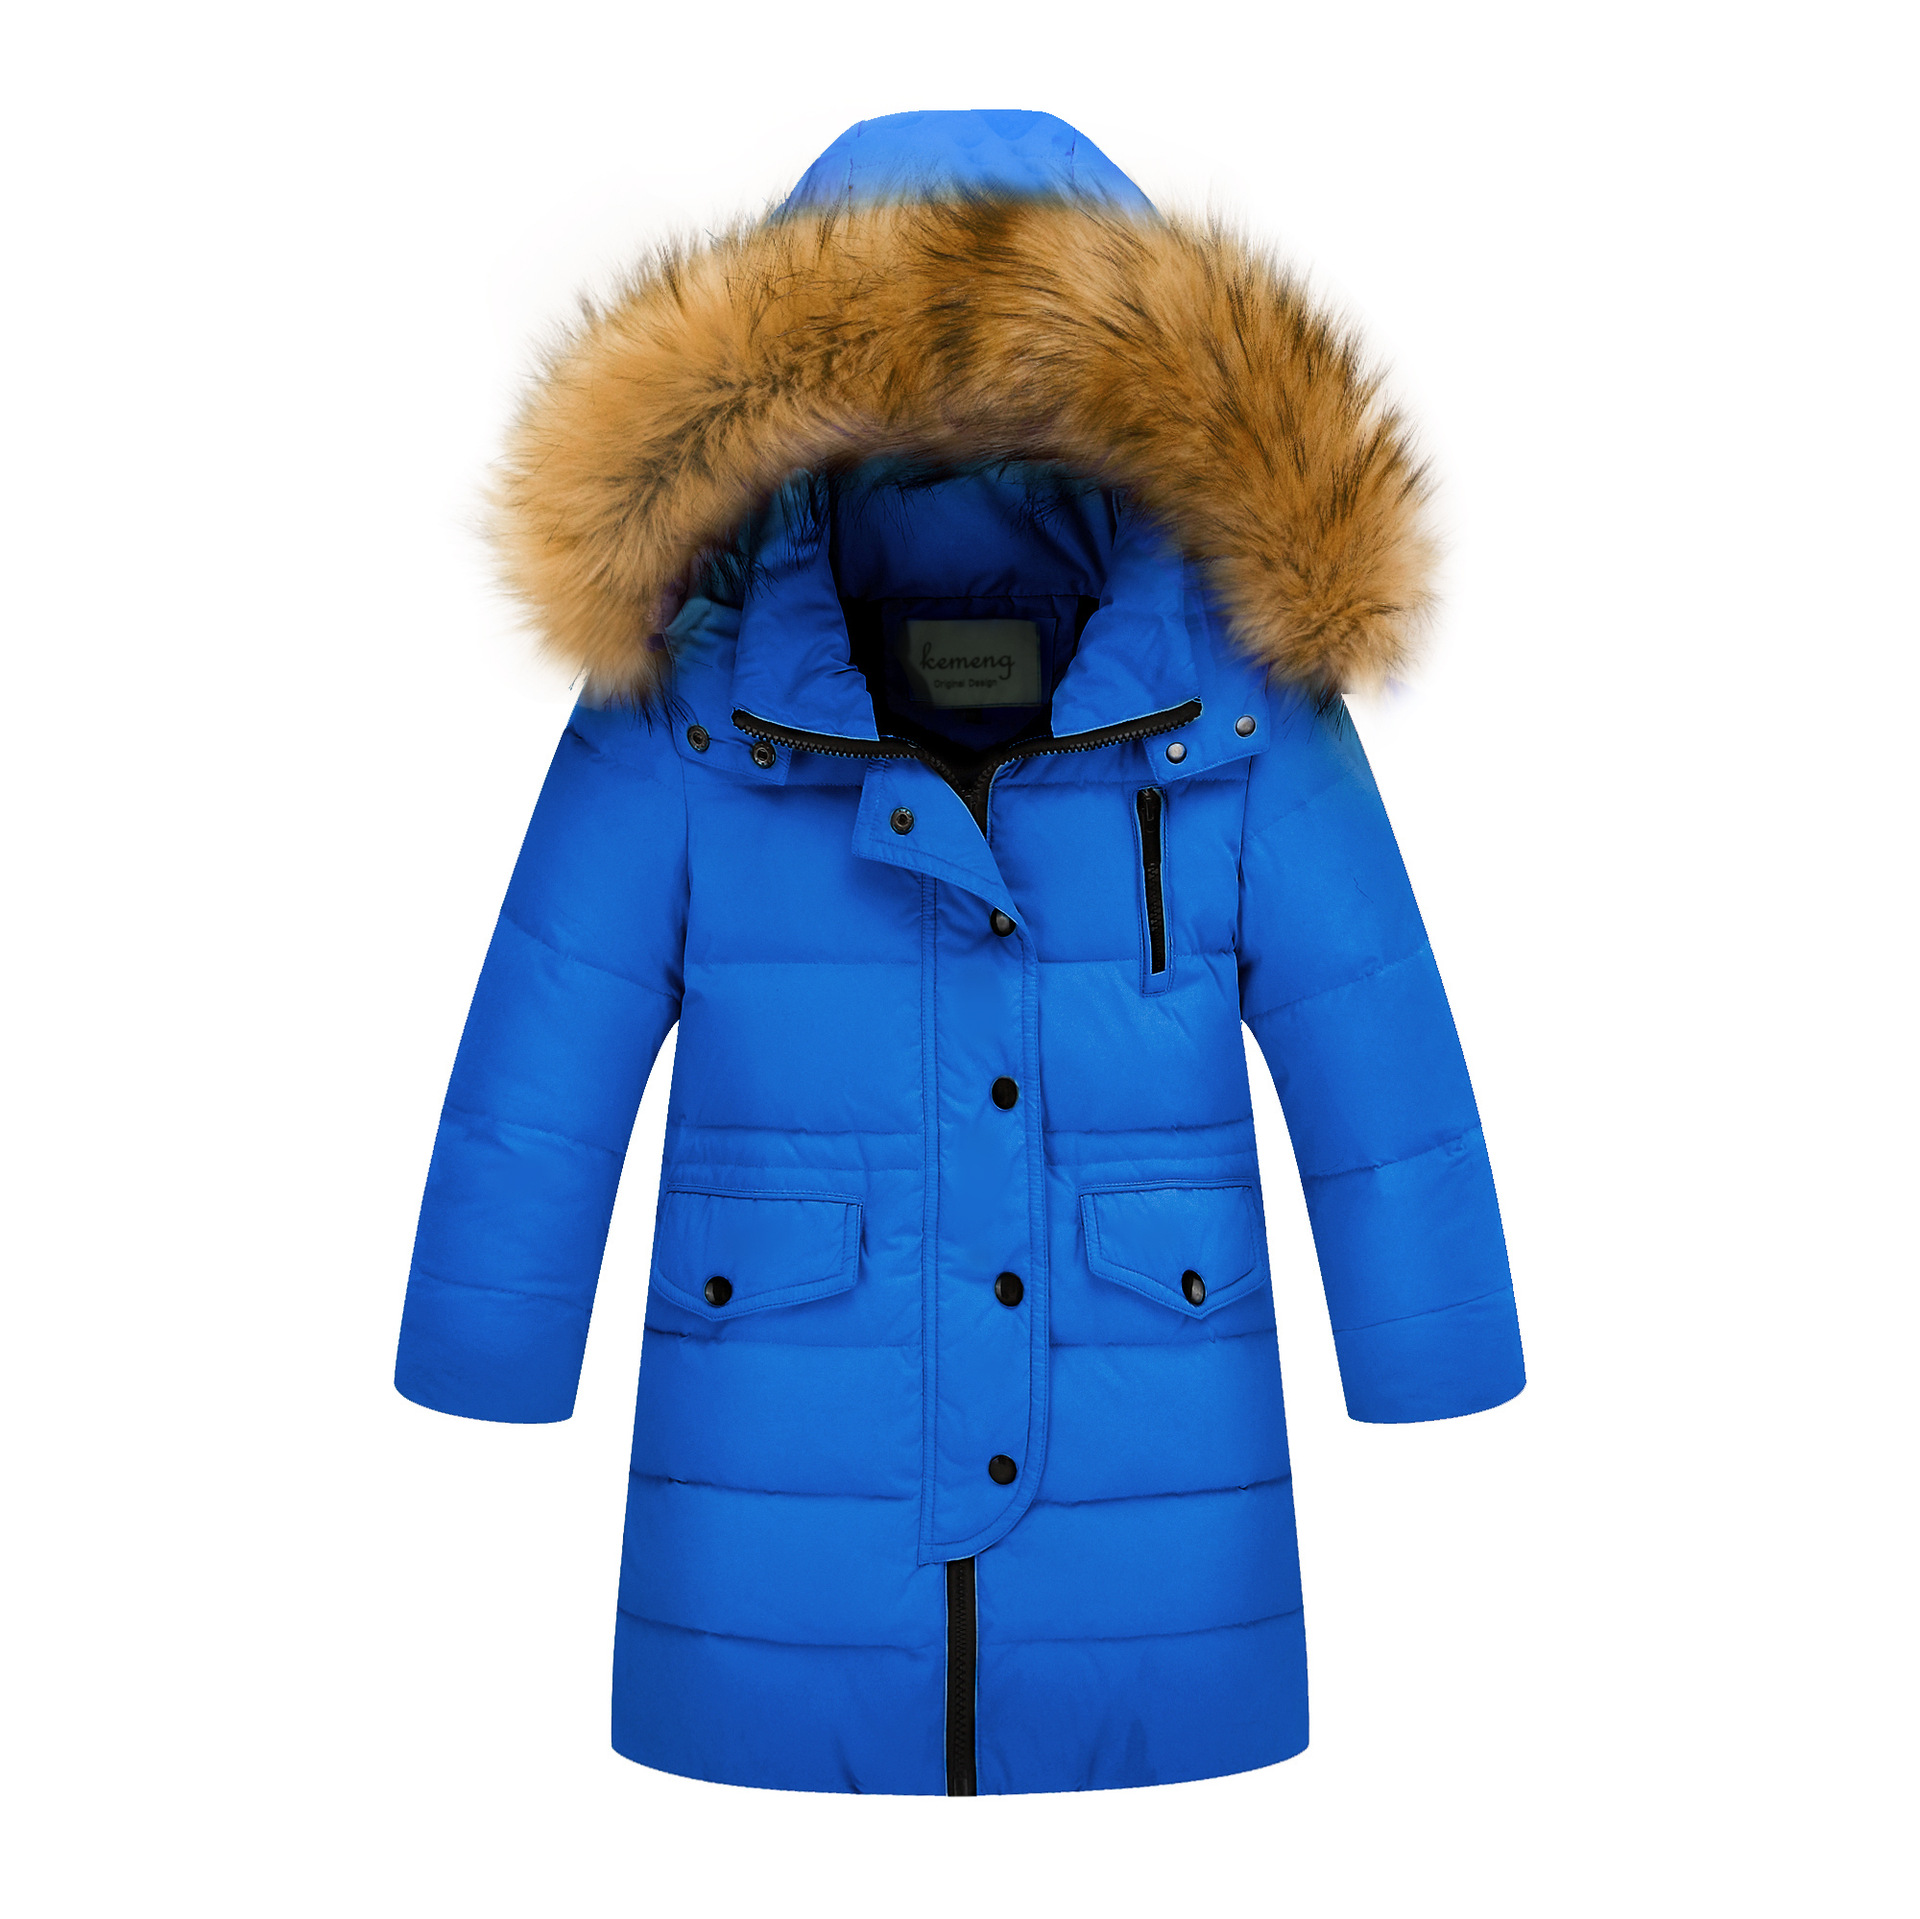 Baby Girls Boys Clothing Children Jackets Duck Down Parkas Kids Girls Winter Coat Winter Outerwear Thicken Warm Clothes girl duck down jacket winter children coat hooded parkas thick warm windproof clothes kids clothing long model outerwear